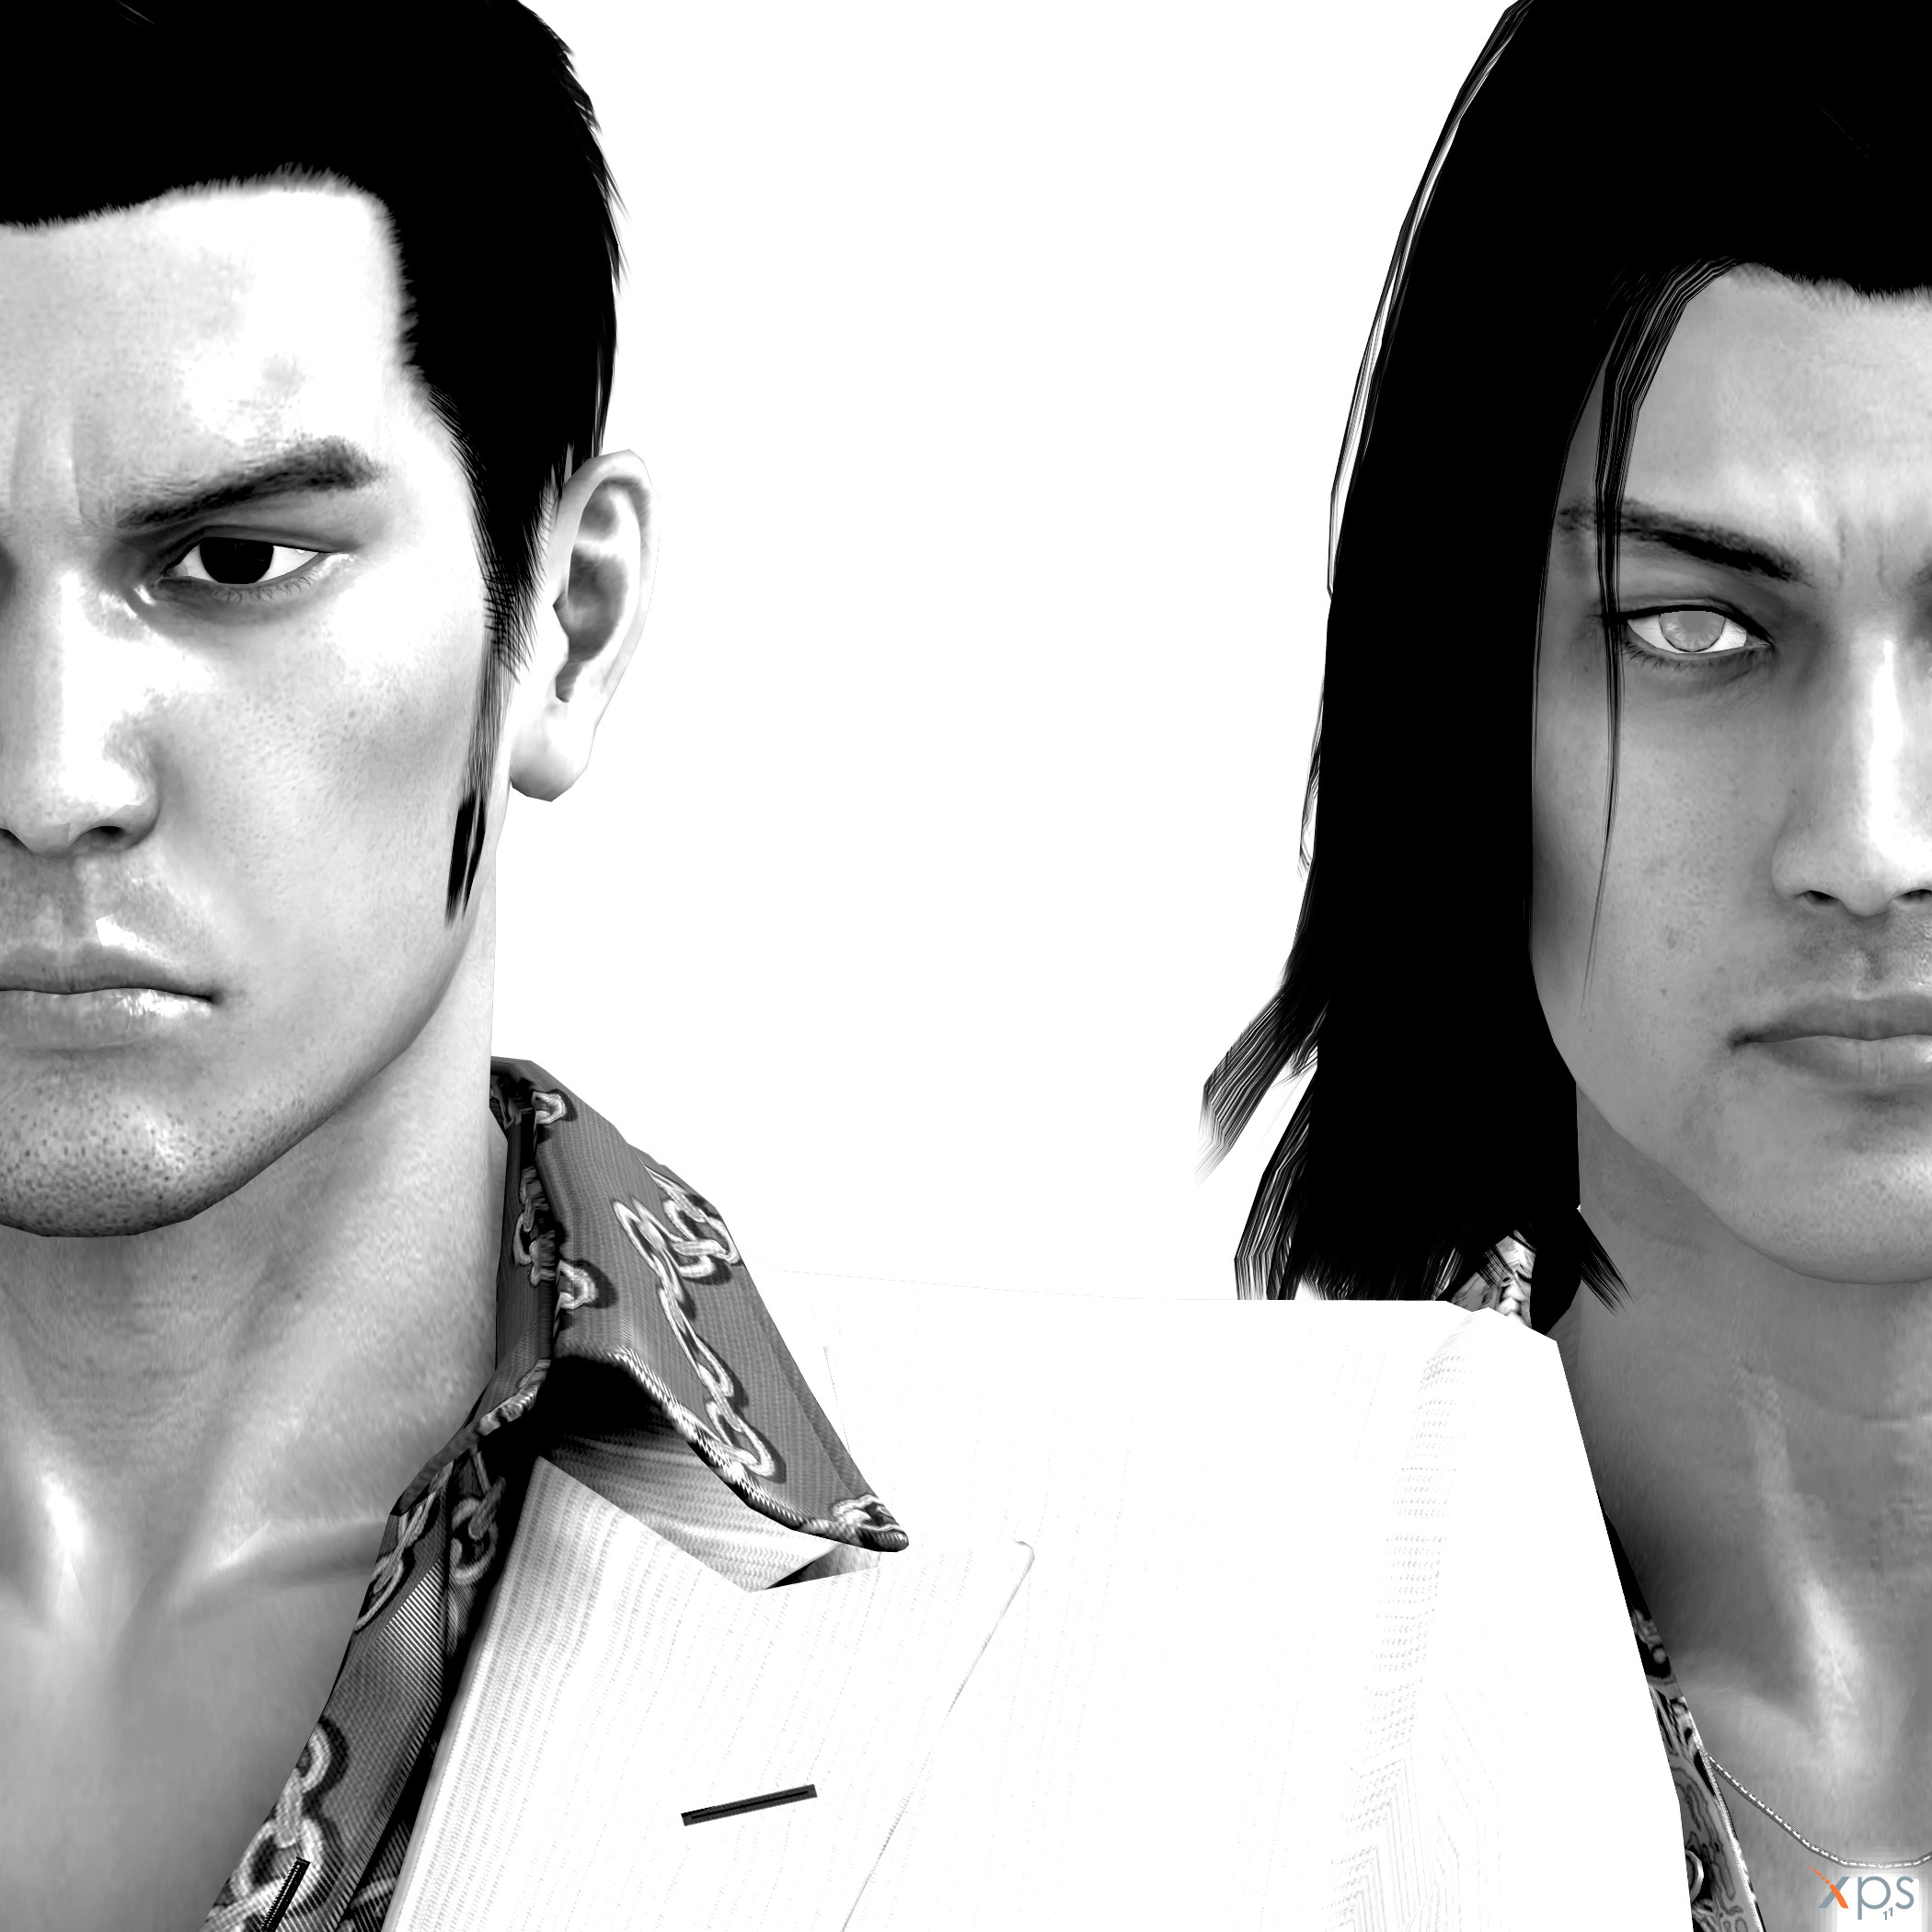 Wallpapers Yakuza 80 Background Pictures Sony Ps4 0 Zero R1 3840x2160